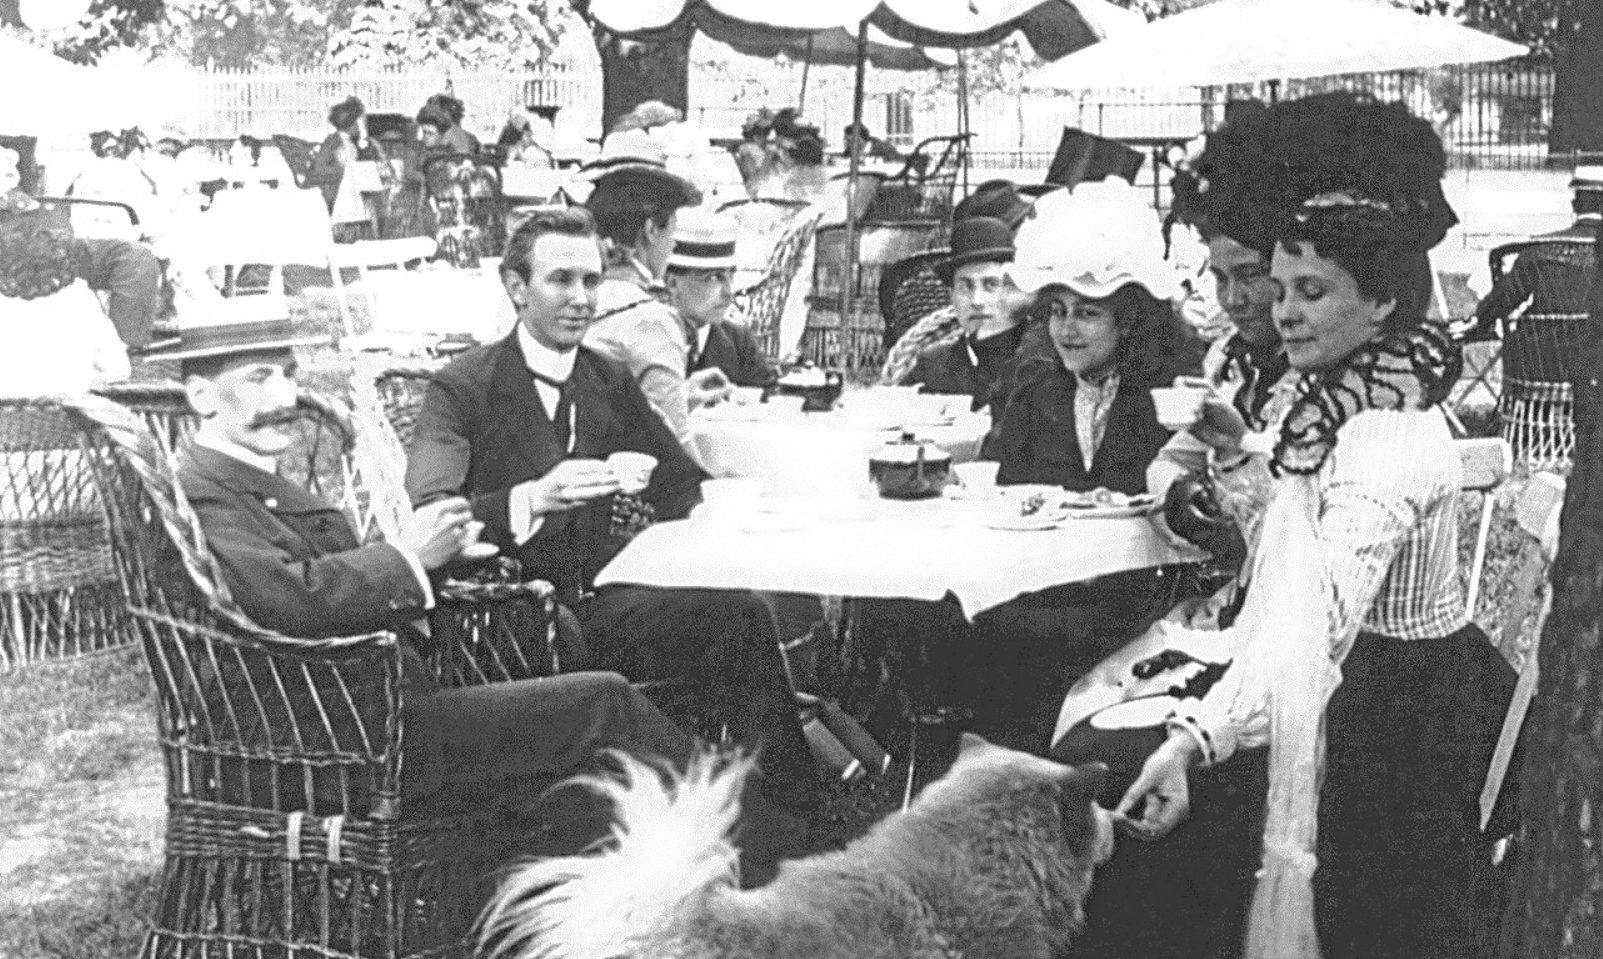 Without the Victorians, would we be enjoying picnics in the park